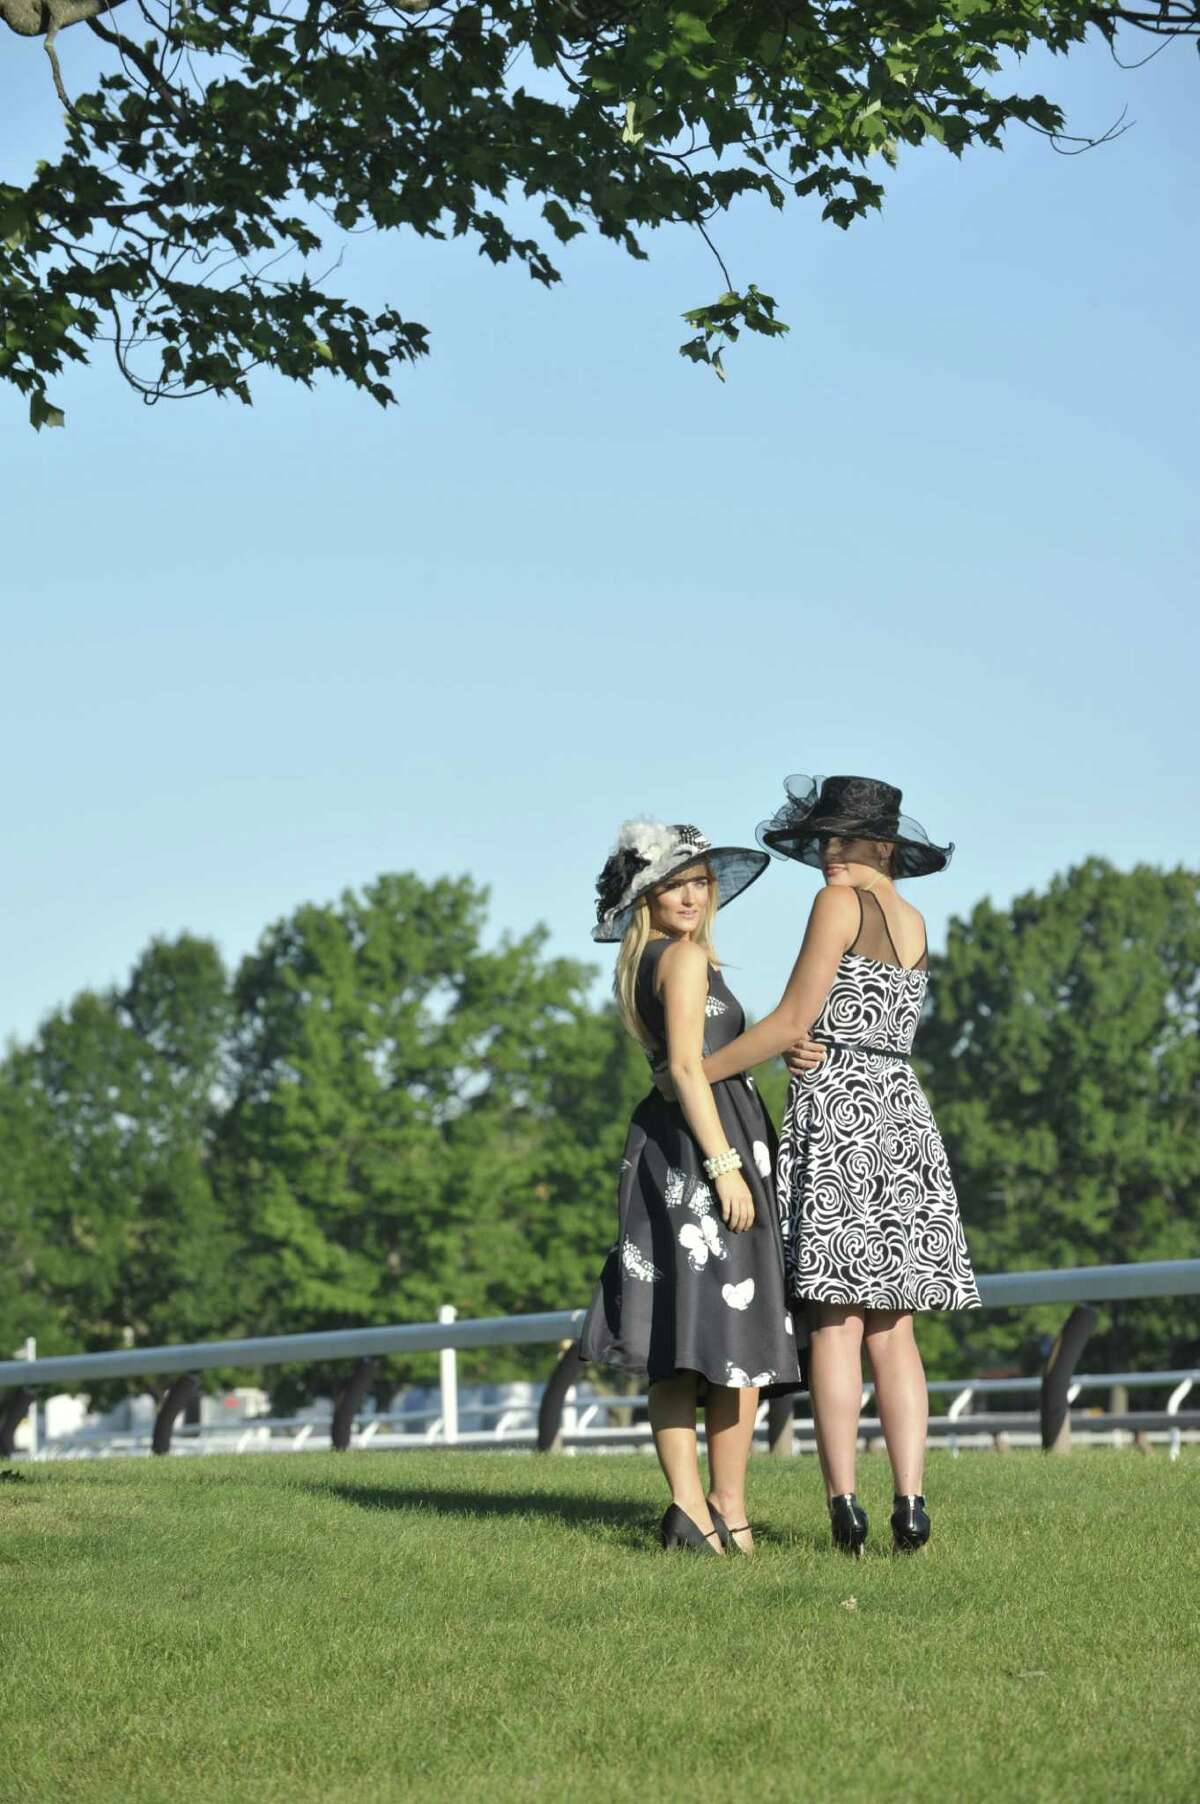 Chloe Aviza, left, is wearing a hat made by Susanne Dura, owner of Fancy Schmancy in Latham and a Fancy Schmancy private label dress. Clothing provided by Fancy Schmancy. Lyndsey Lowe, right, is wearing a hat by Scala and a dress by Frank Lyman. Clothing provided by Lifestyles in Saratoga Springs. (Photo Paul Buckowski / Times Union)